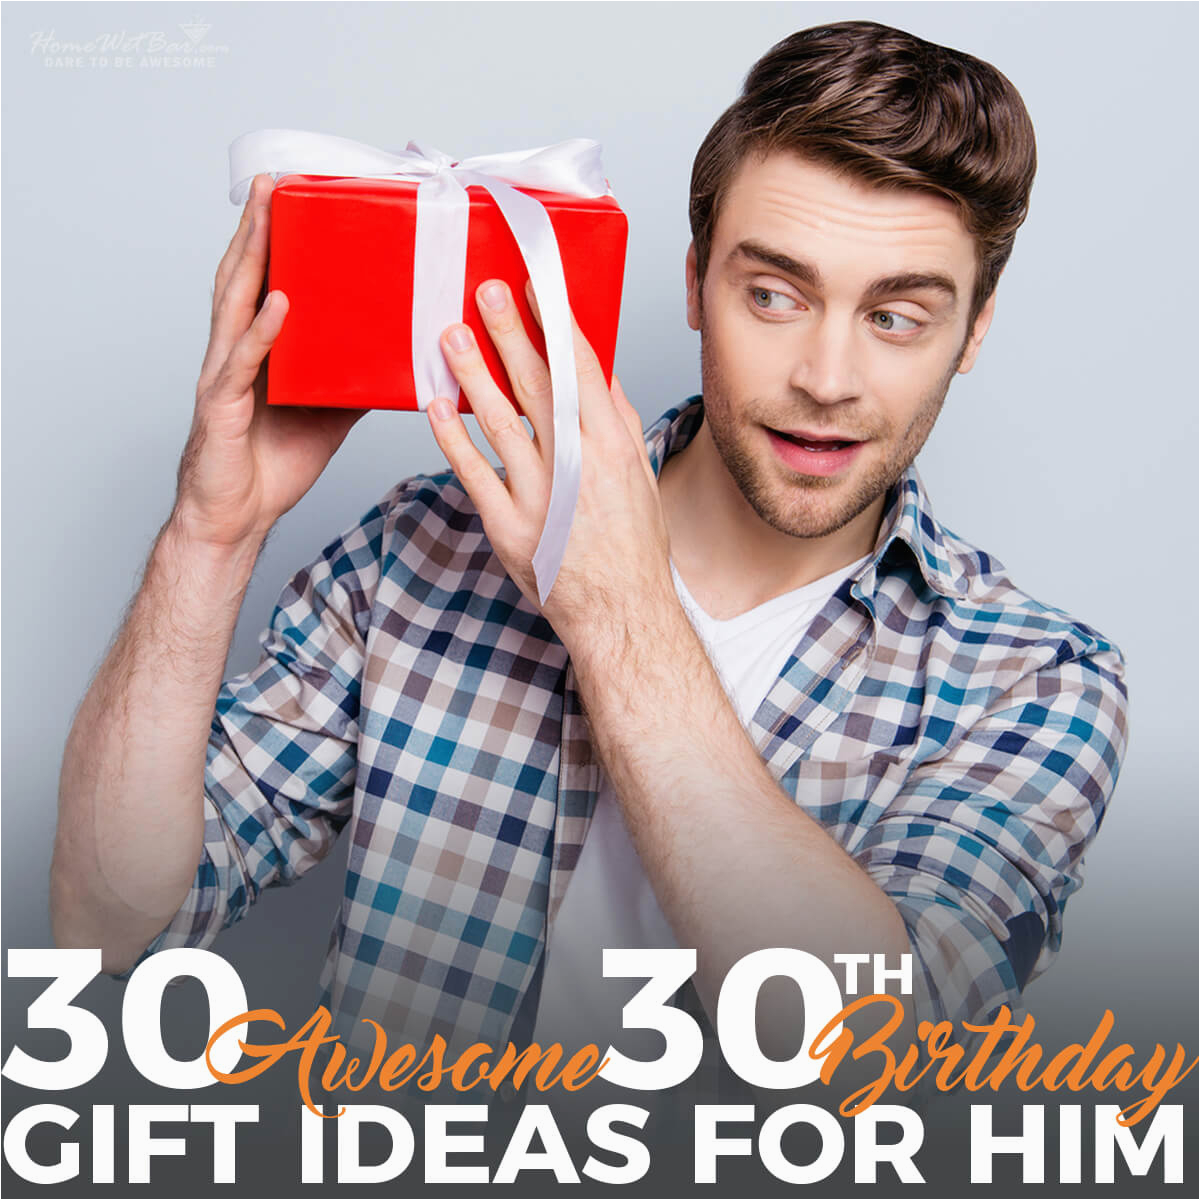 30 Year Old Birthday Gifts for Him 30 Awesome 30th Birthday Gift Ideas for Him